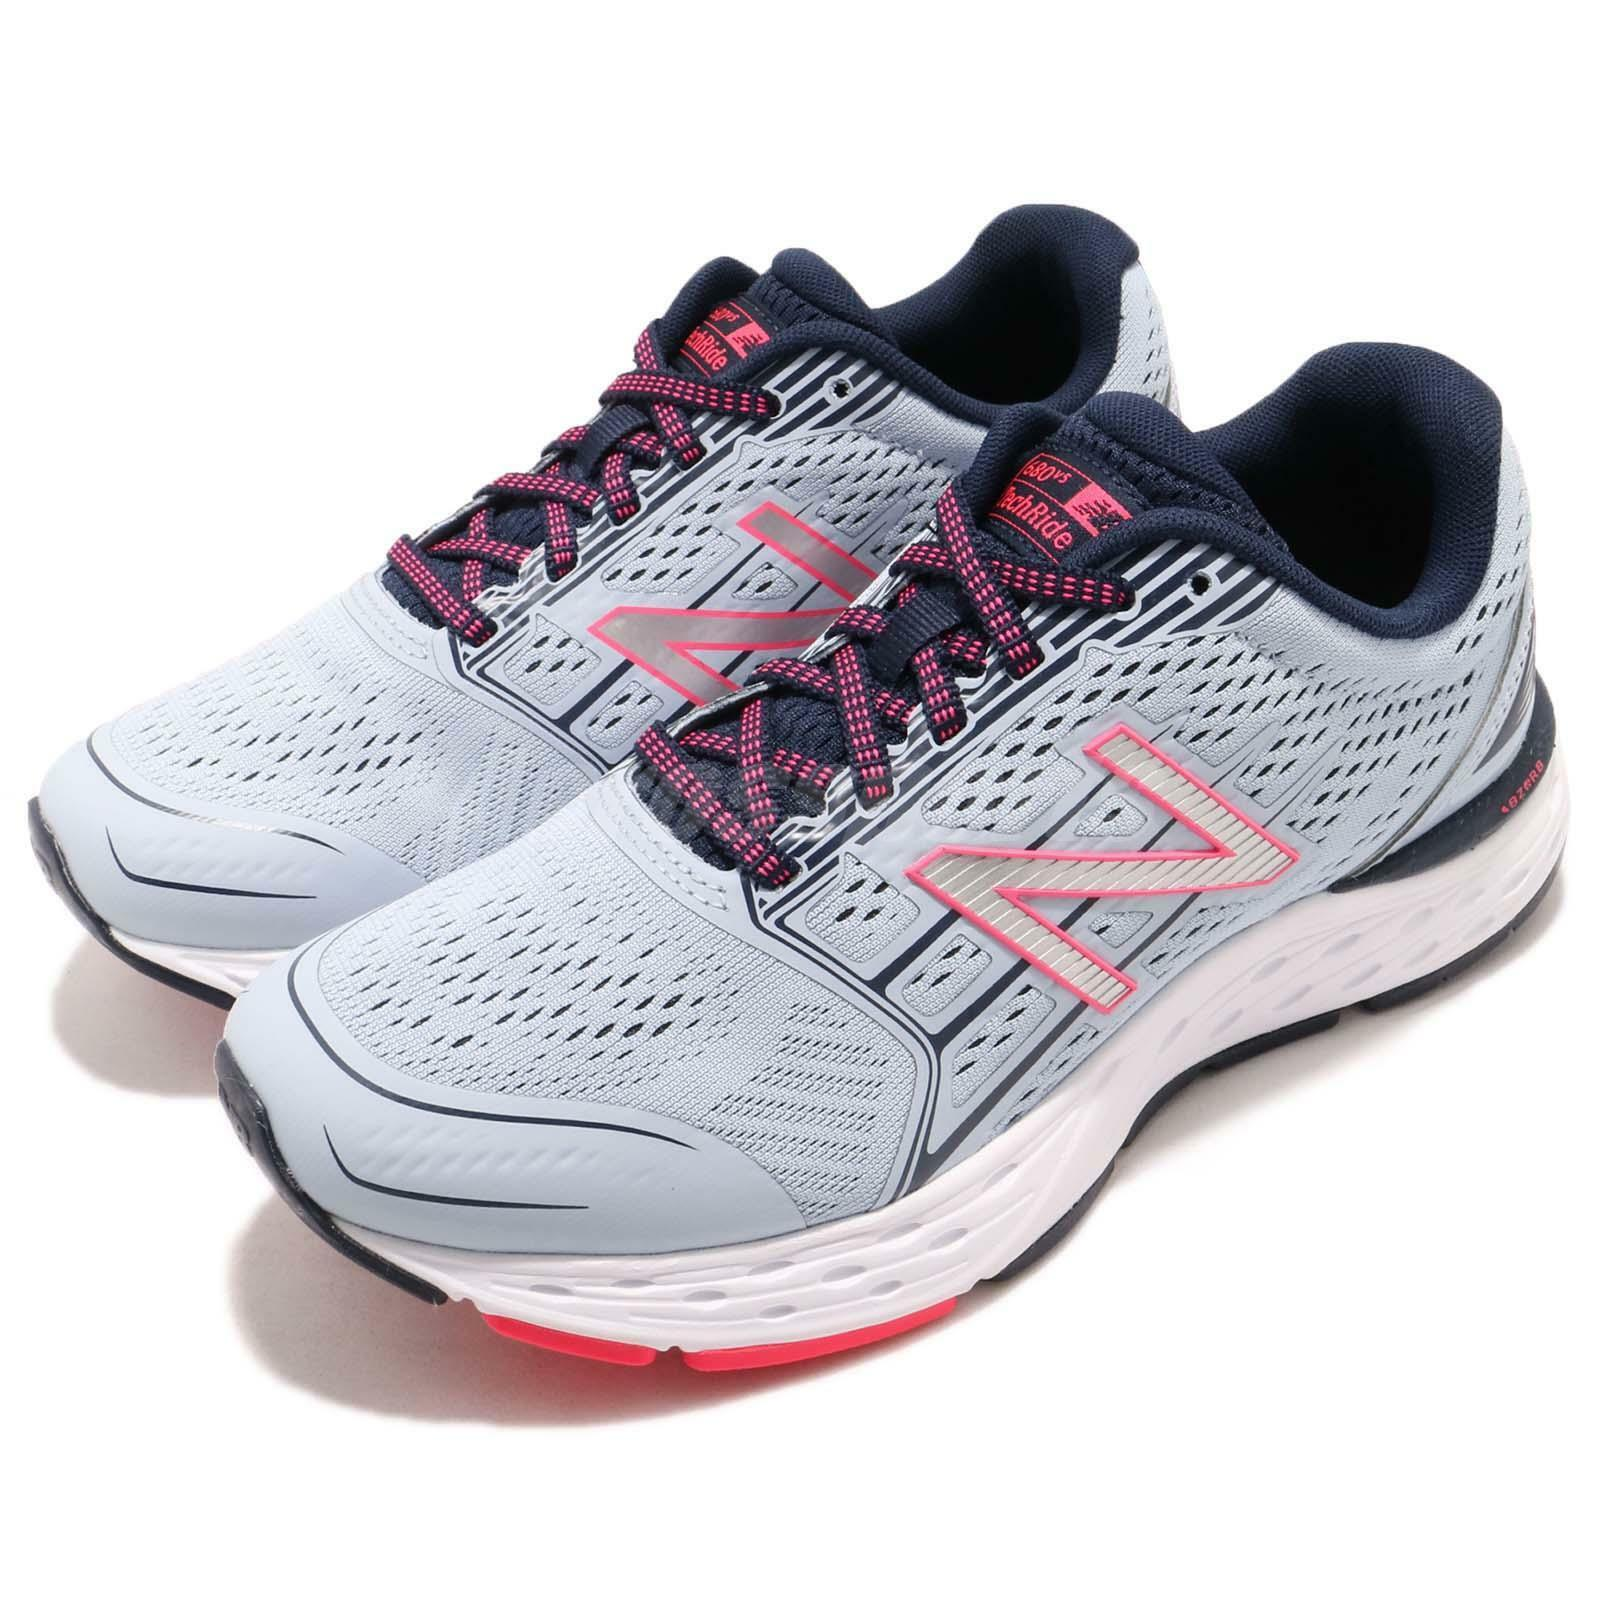 New Balance W680CG5 D Wide Bleu rose Baskets Navy Femme fonctionnement chaussures Baskets rose W680CG5D 6e7a65